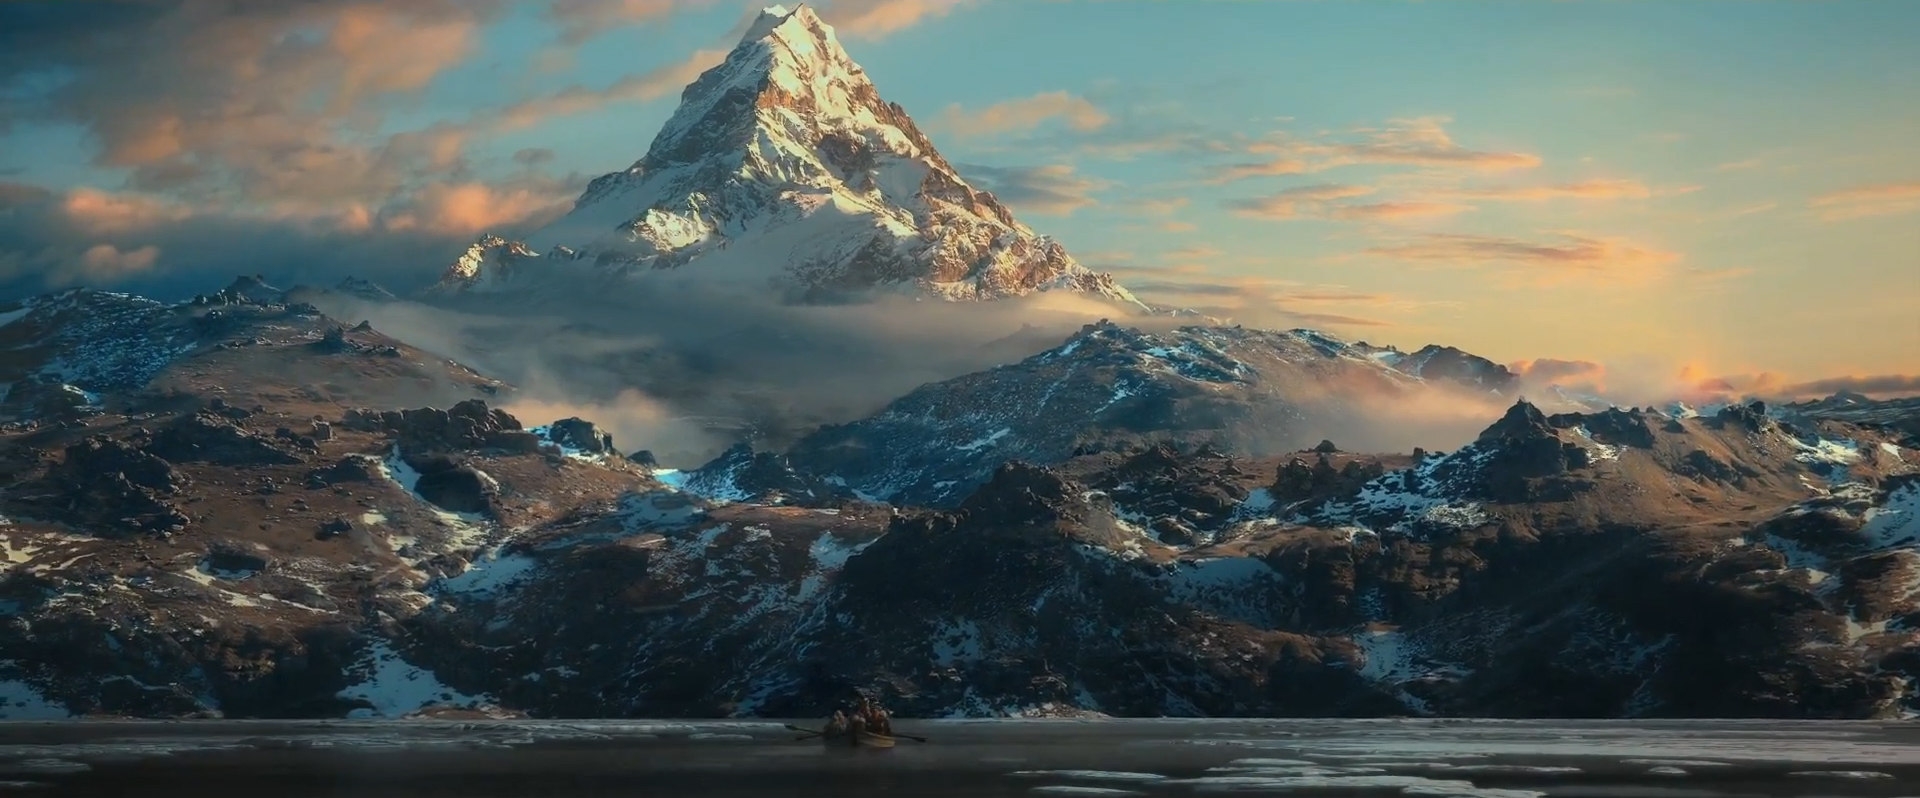 Filming location of the Lonely Mountain